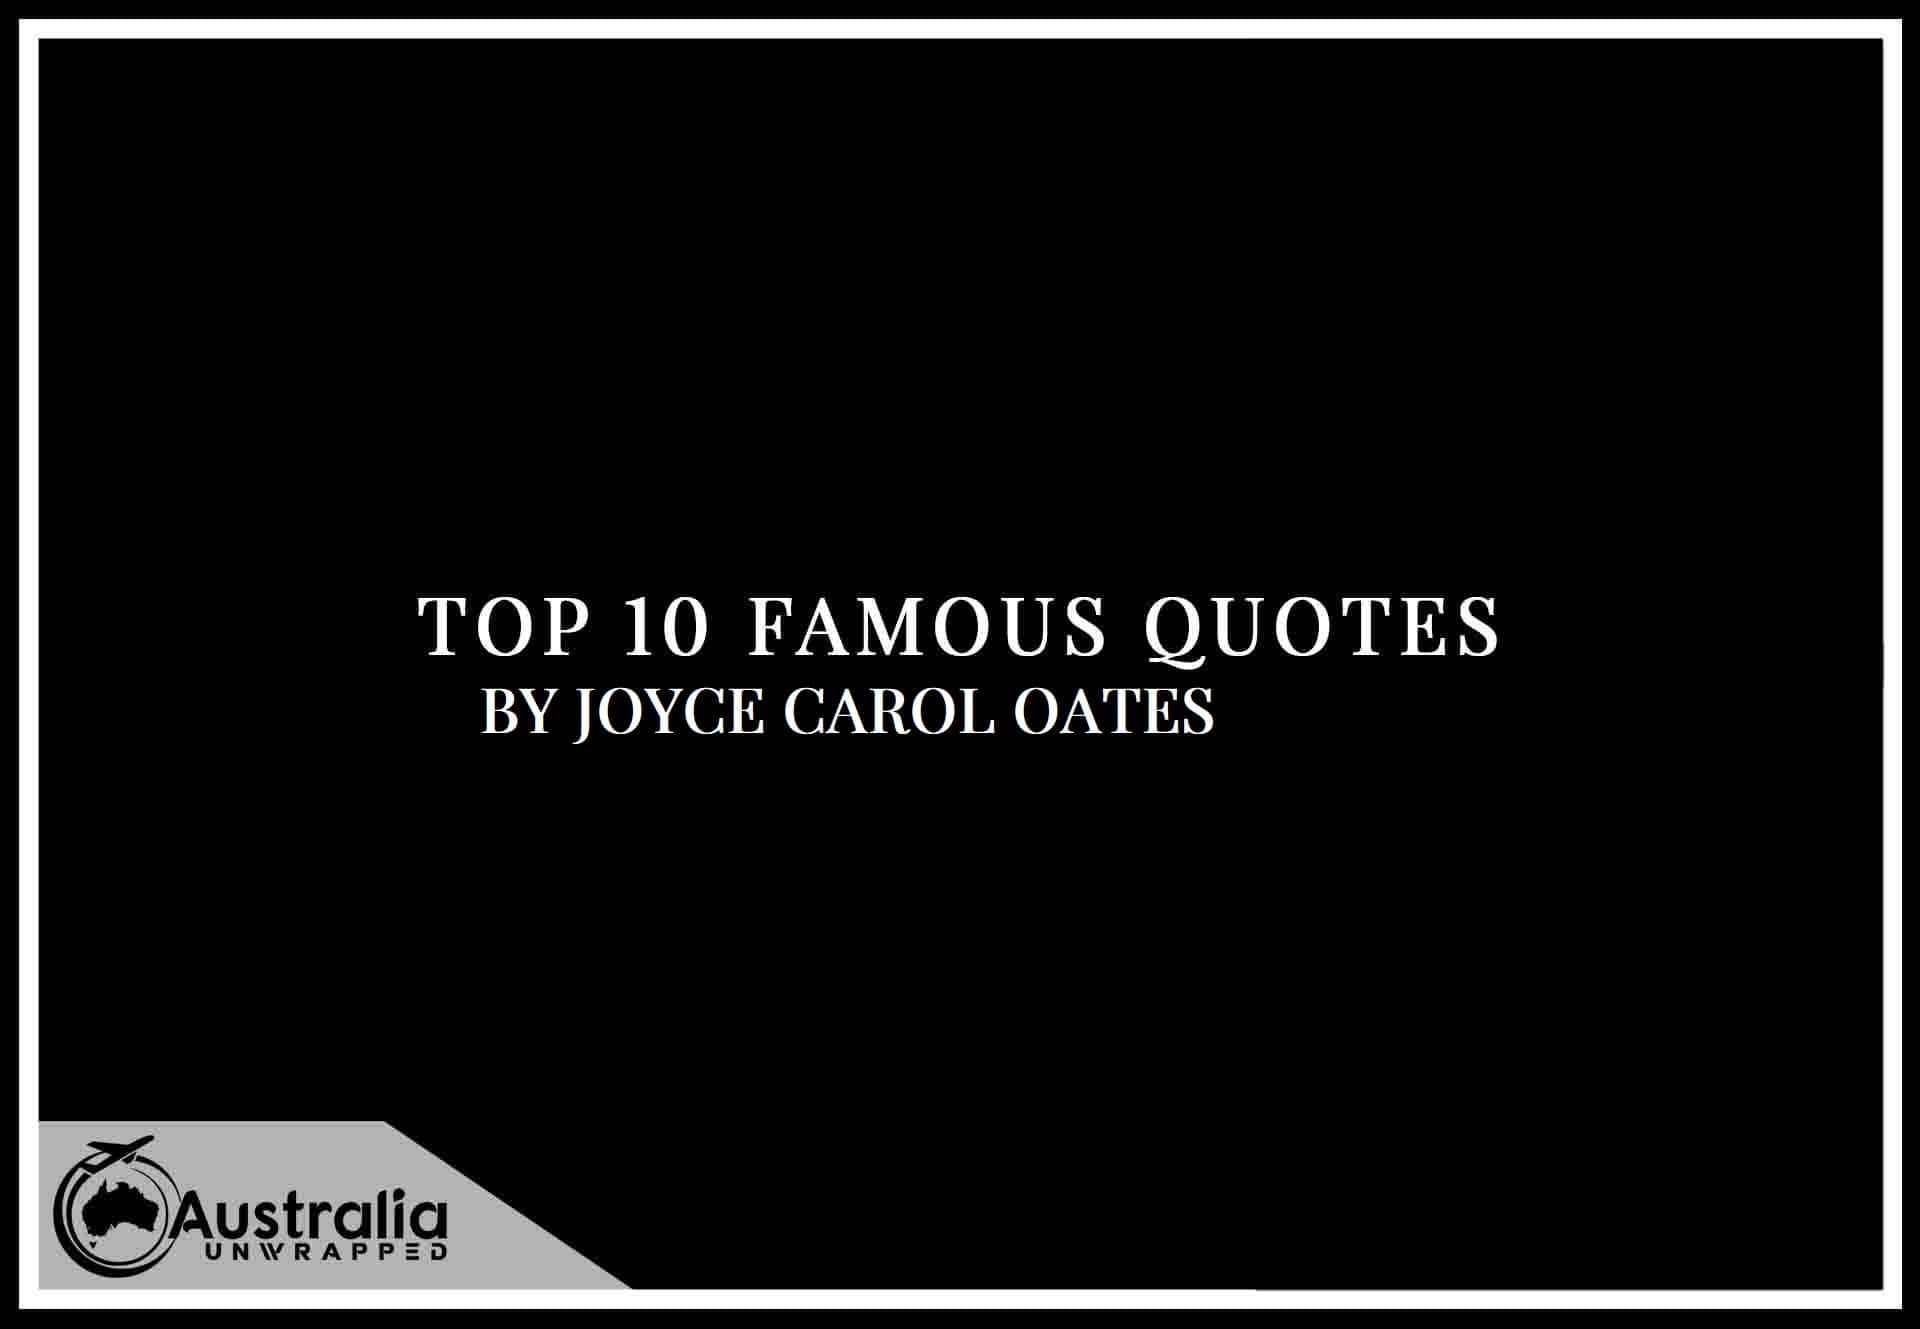 Top 10 Famous Quotes by Author Joyce Carol Oates